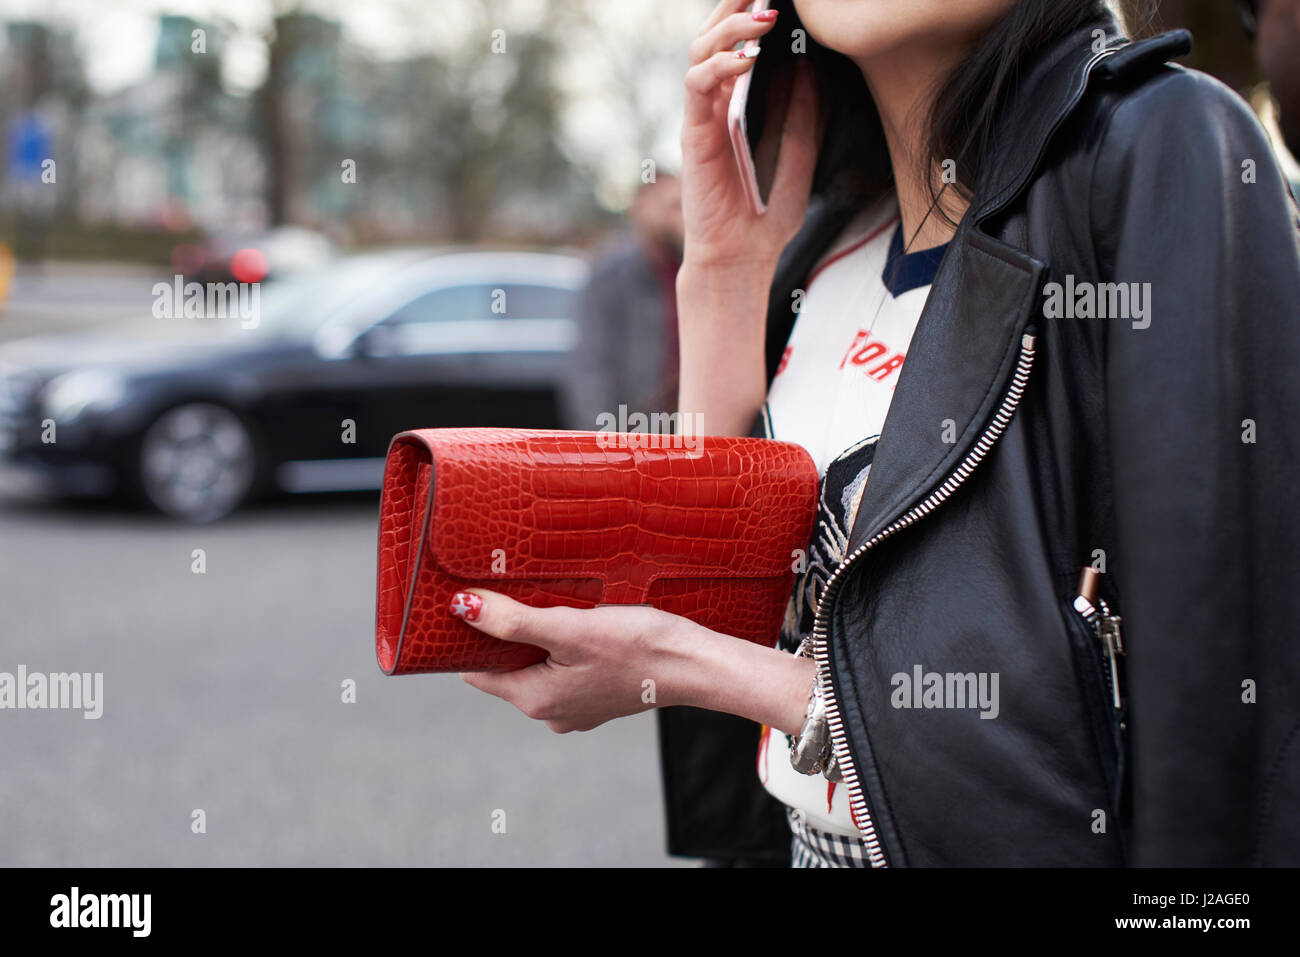 LONDON - FEBRUARY, 2017: Mid section close up of woman wearing a black leather bike jacket, holding a red Hermes - Stock Image